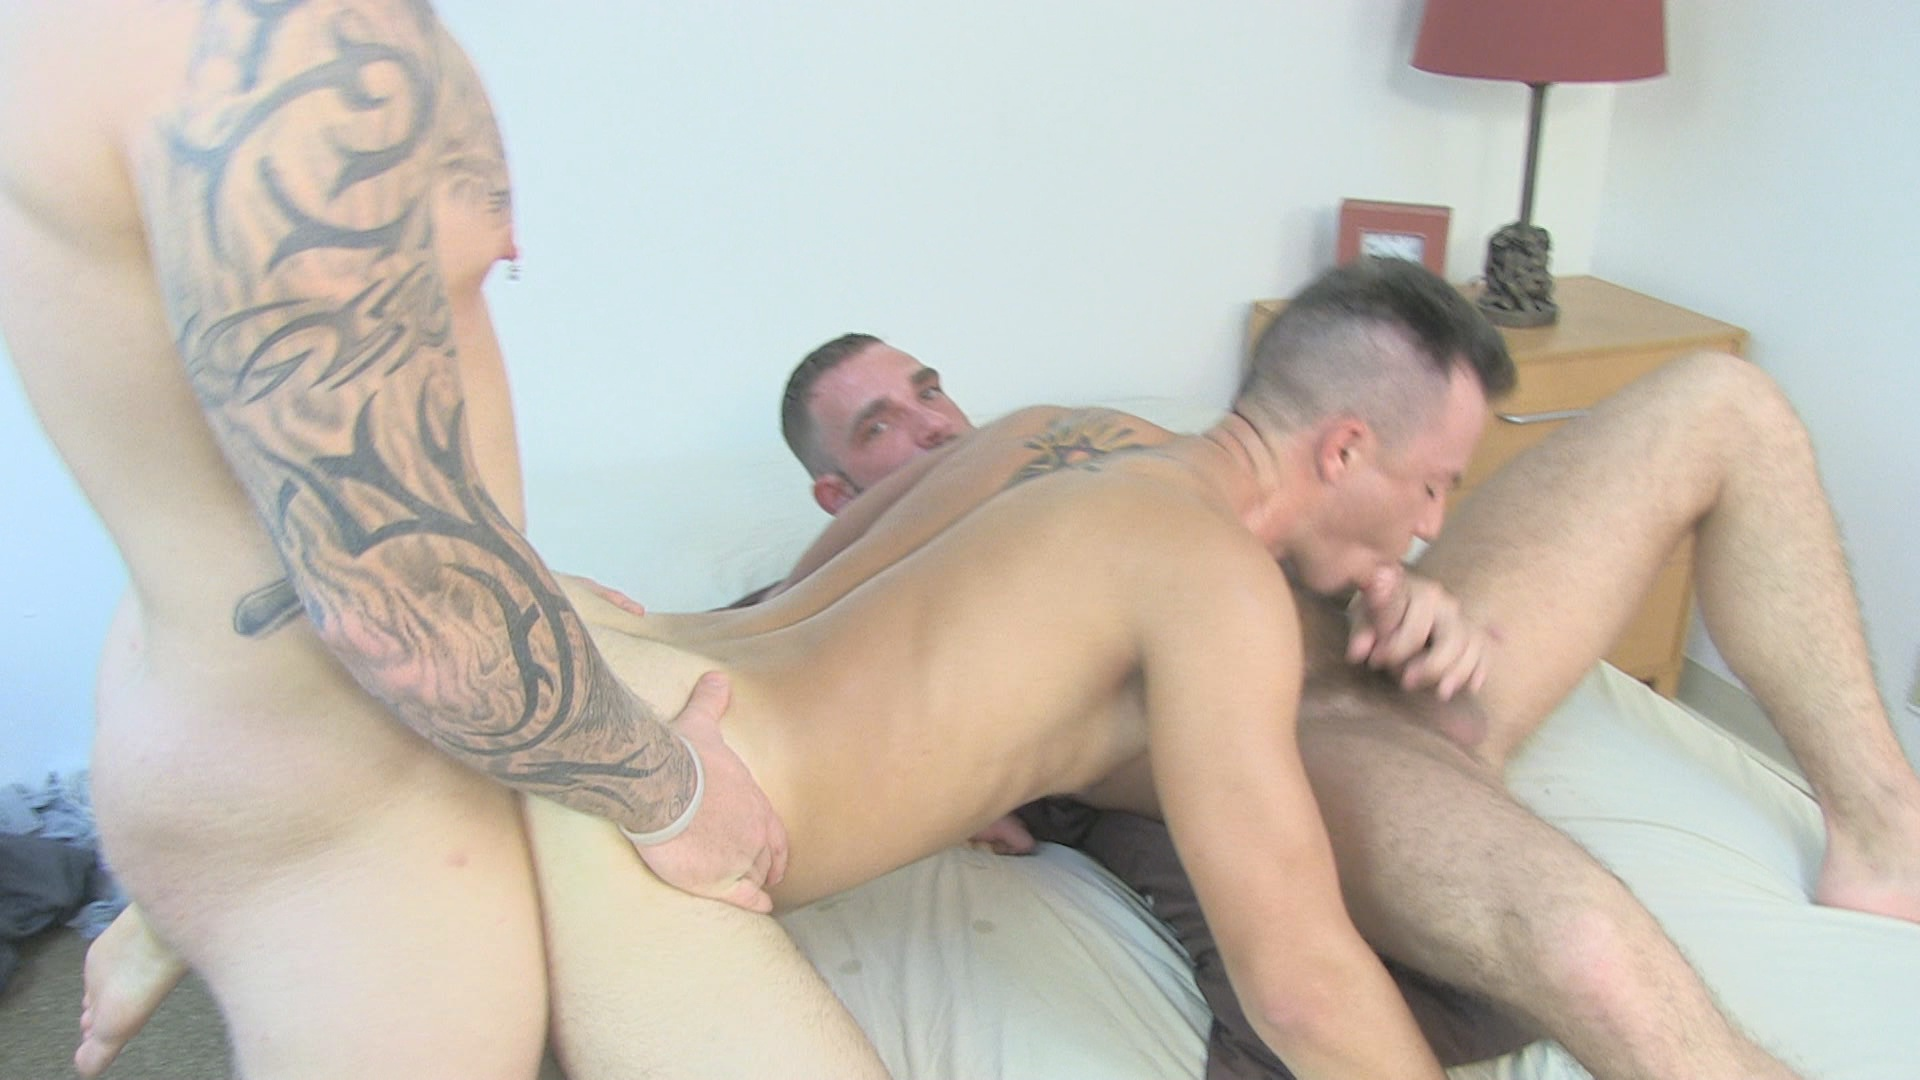 Private Files 4 Xvideo gay